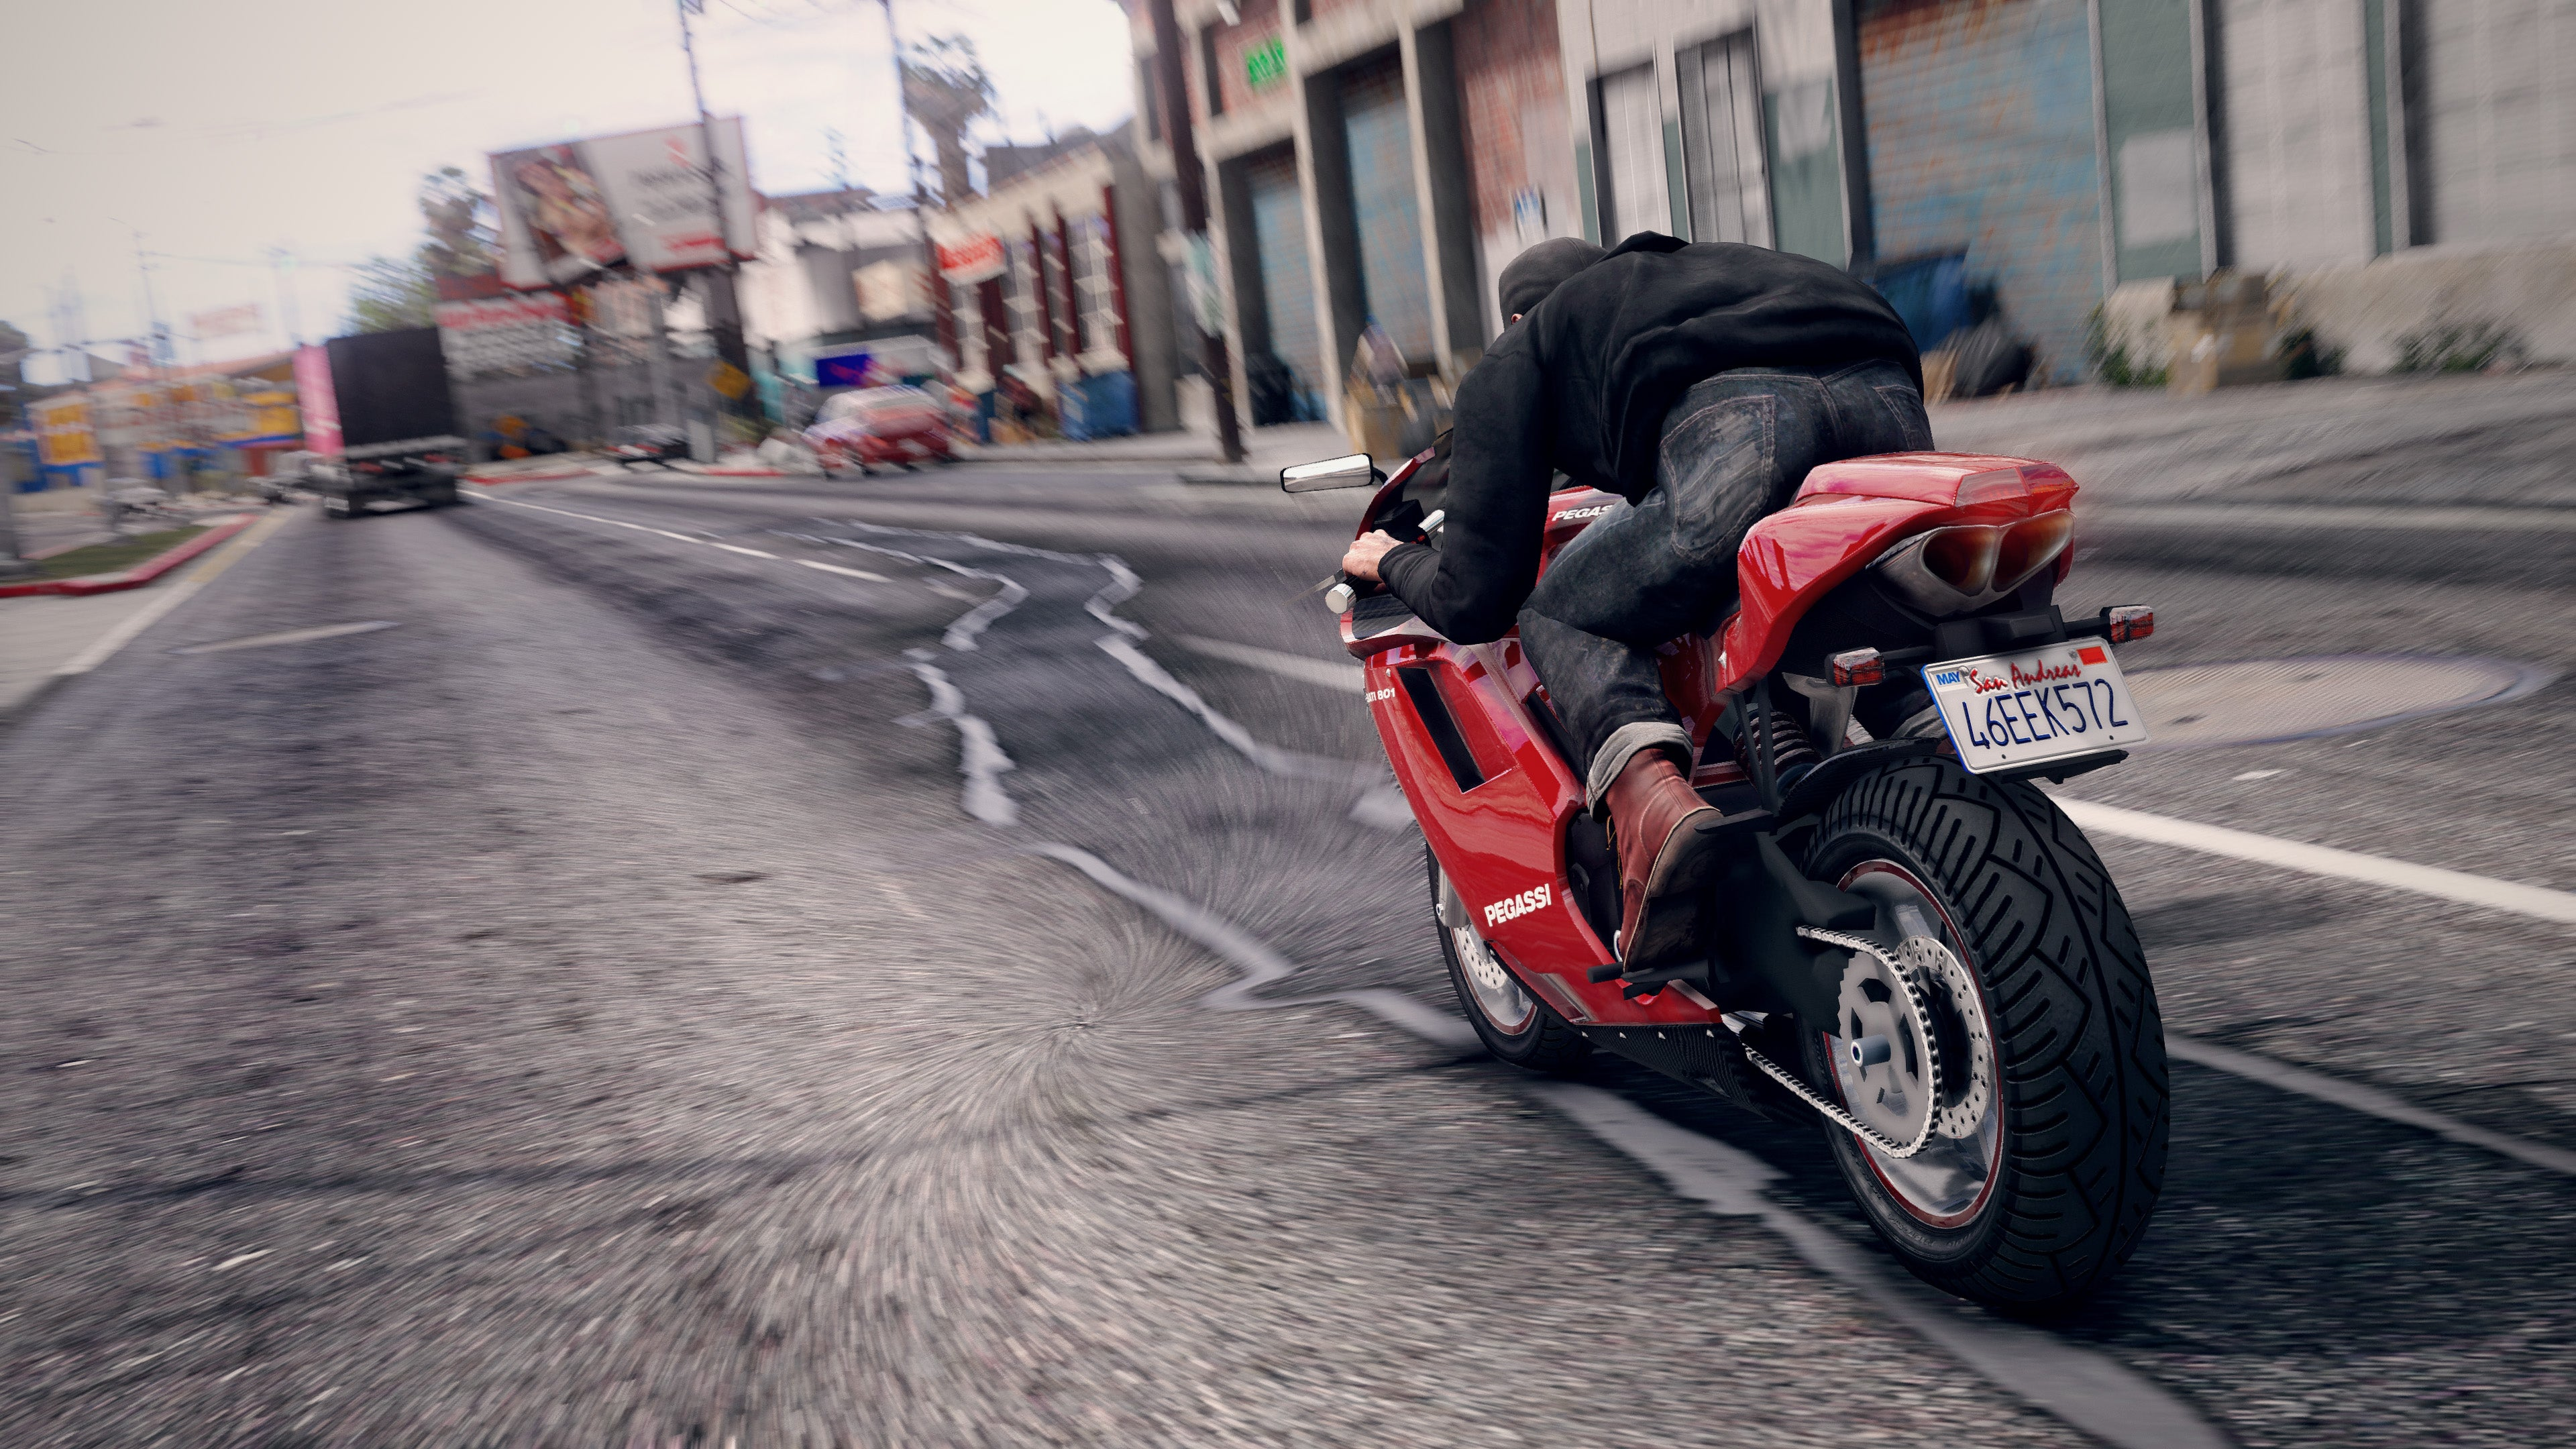 Stunning New GTA V Mod Beset With Claim That Some Of Its Code Was Stolen